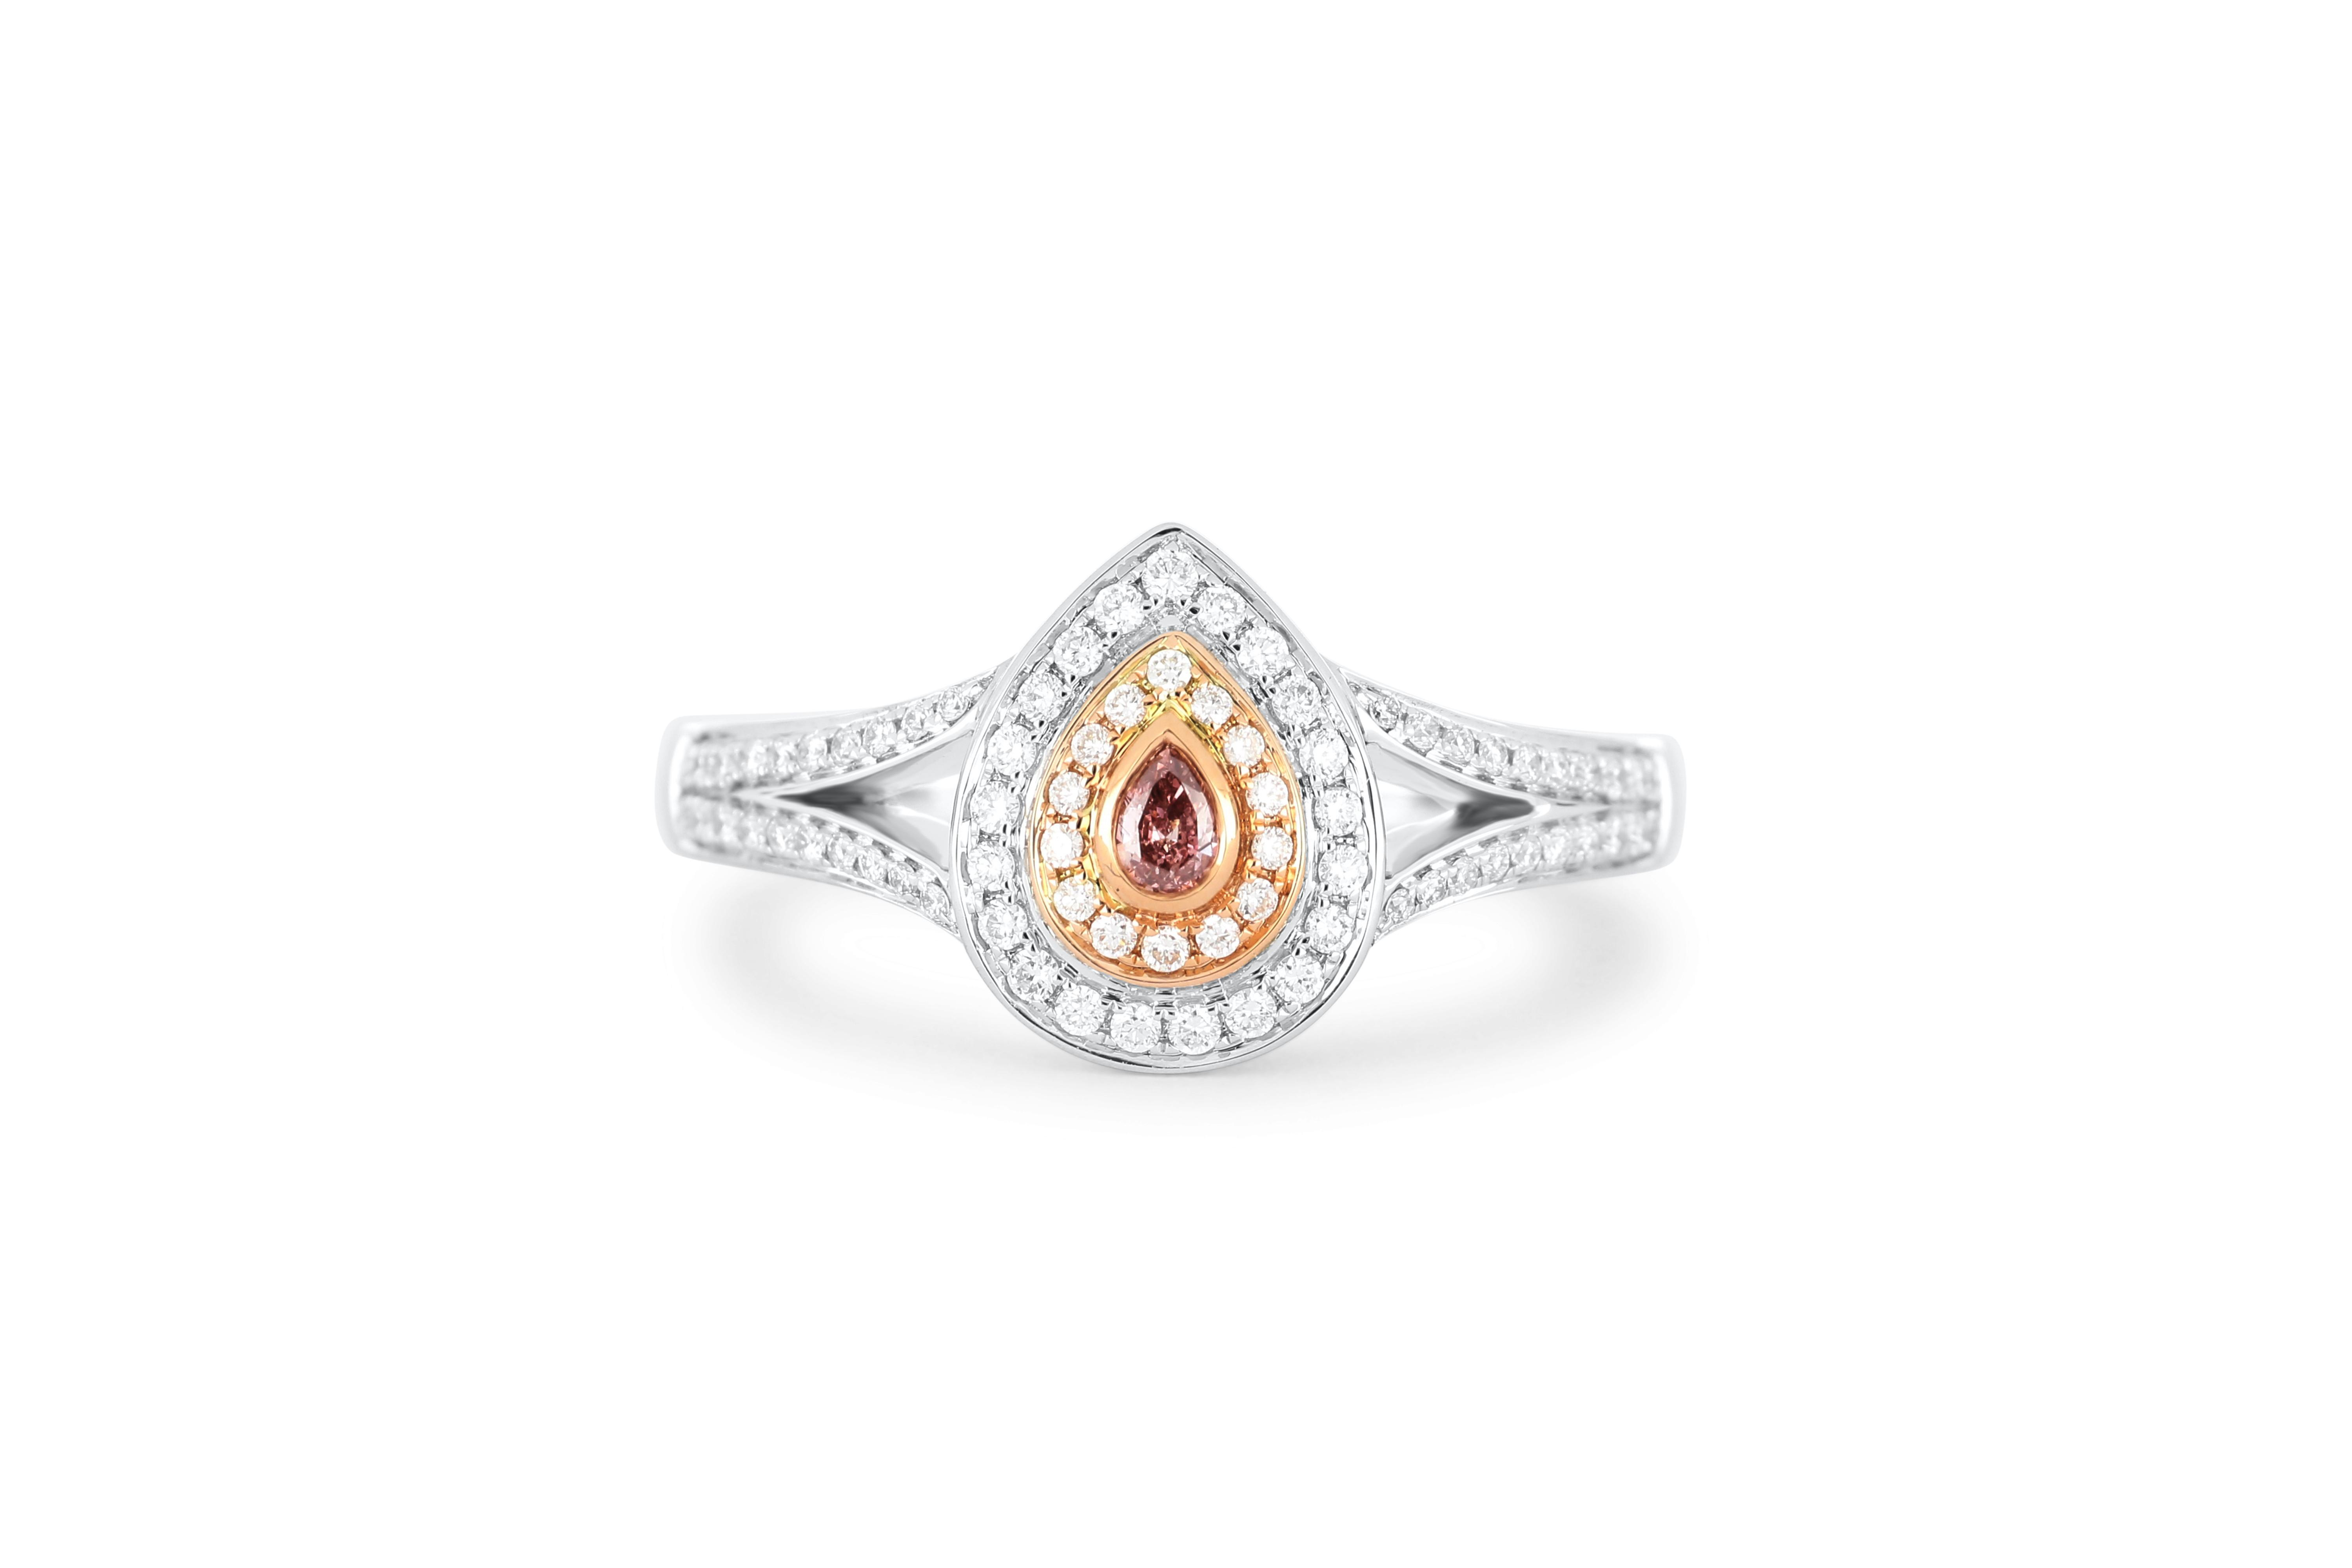 18k gold ring set with a centre FDPR Argyle 0.04ct pear cut natural diamond